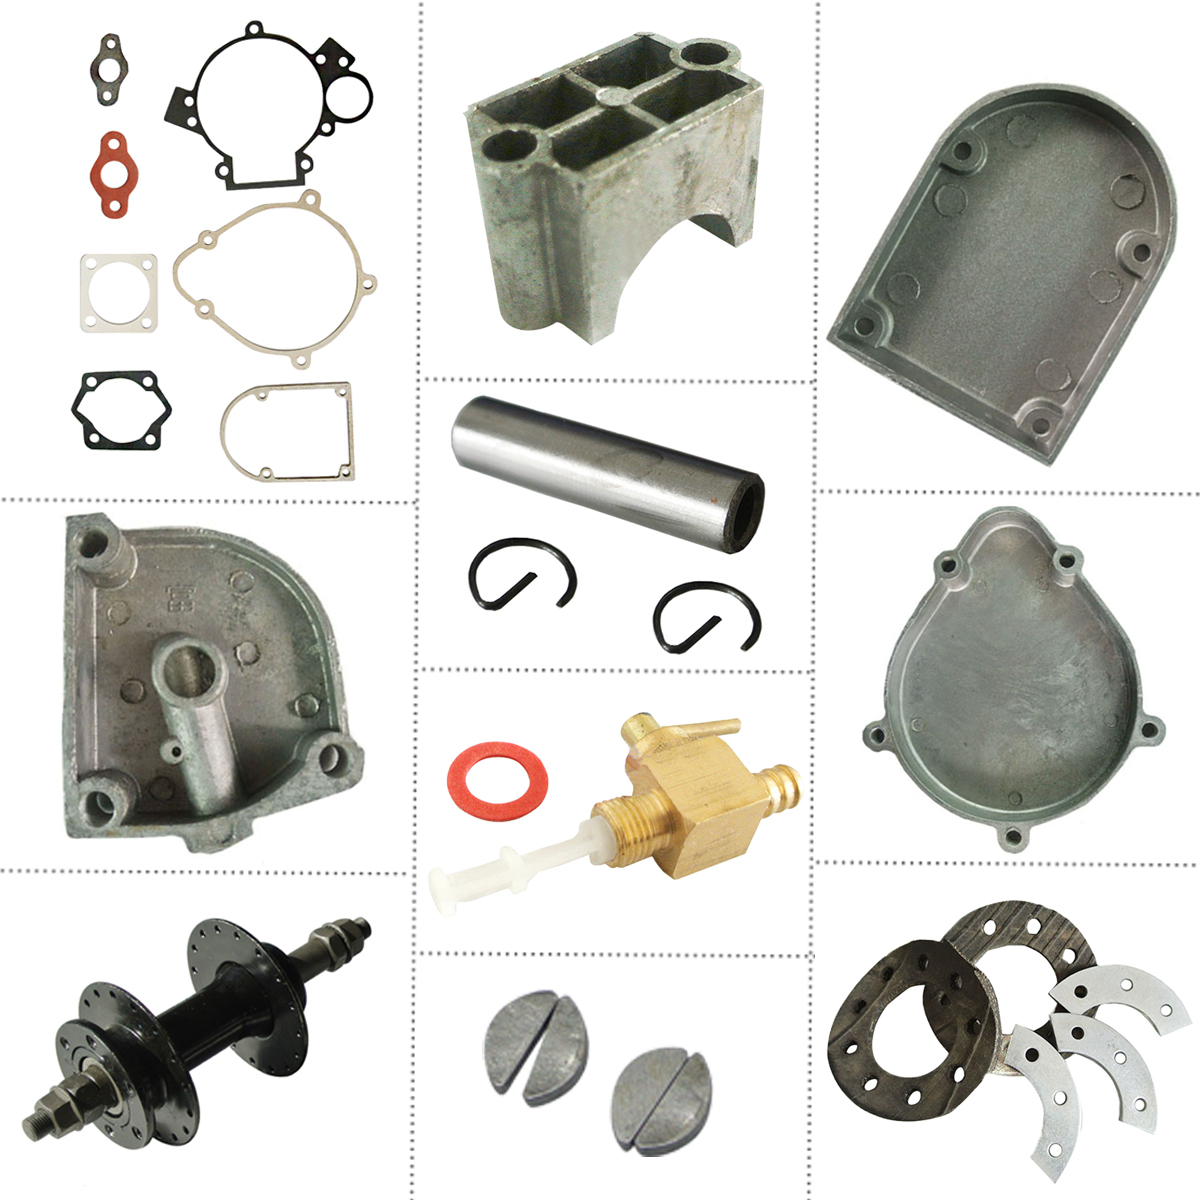 Bicycle Repair Parts : Cc stroke engine motorized bicycle bike replacement